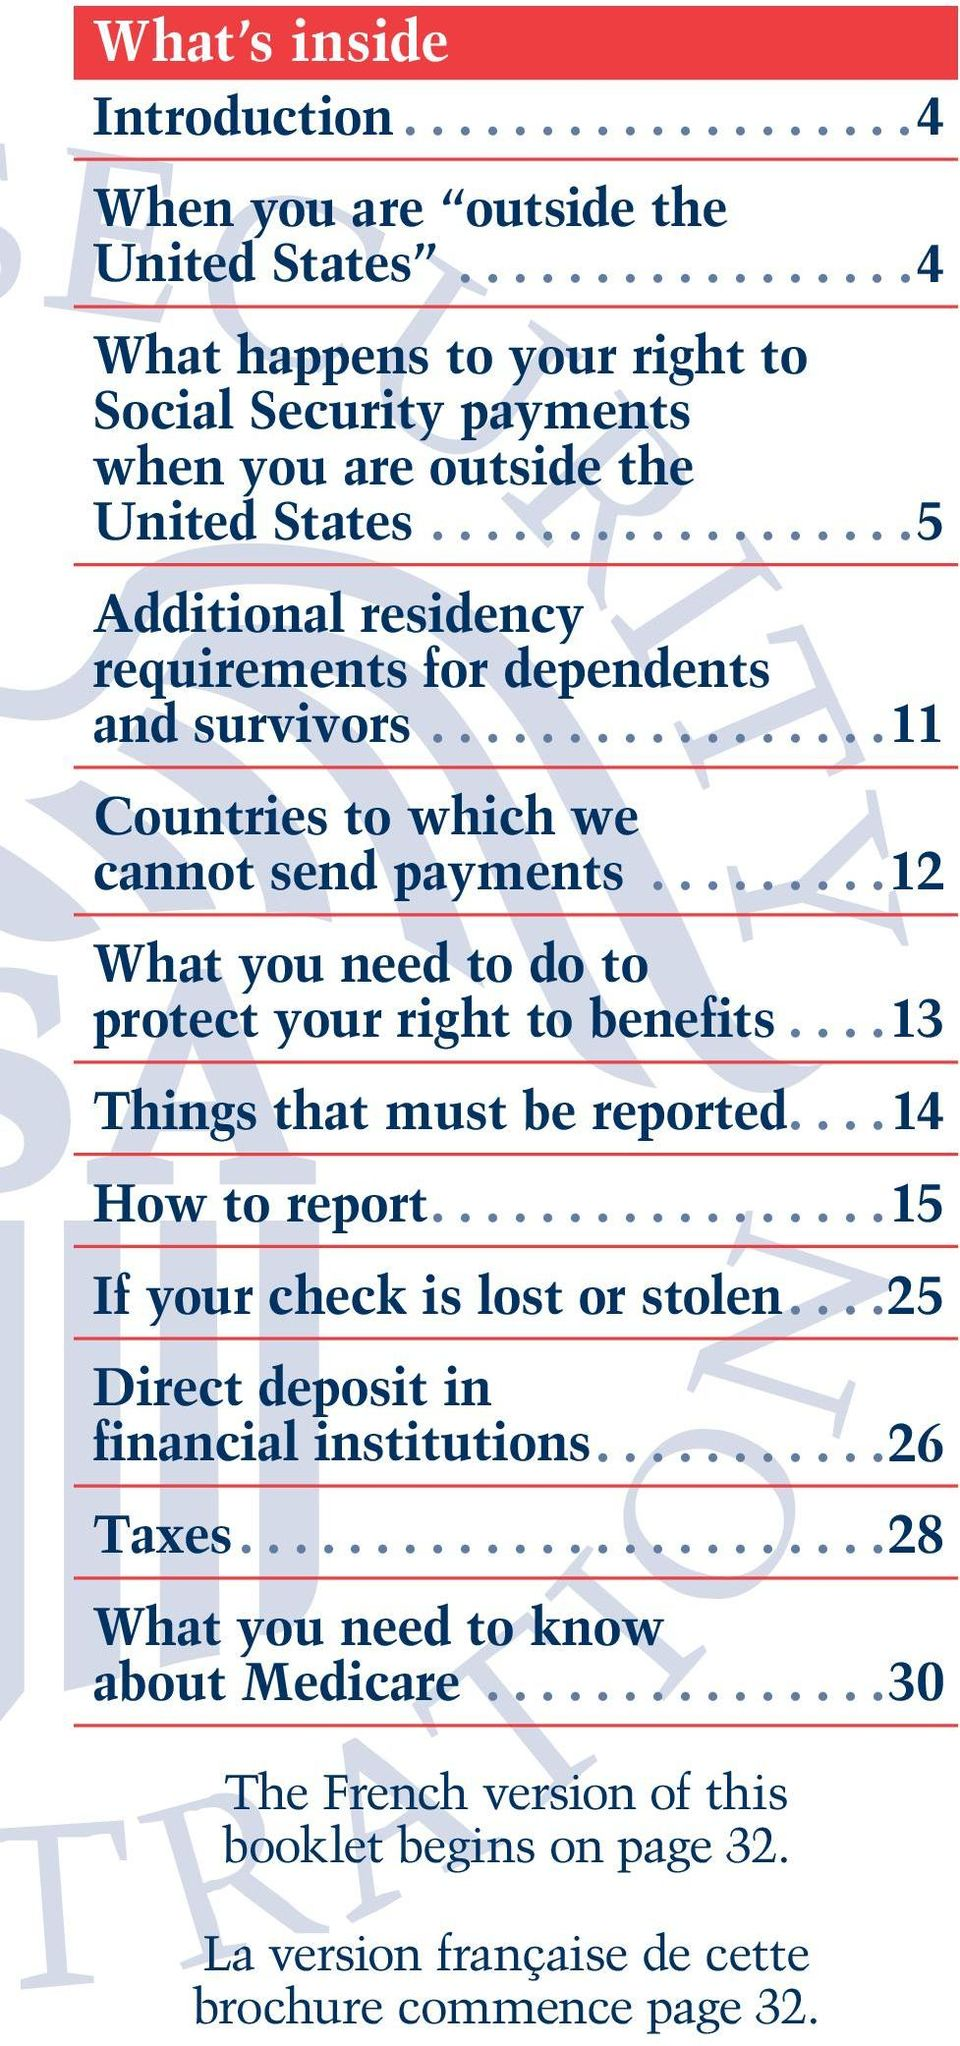 ........ 12 What you need to do to protect your right to benefits.... 13 Things that must be reported... 14 How to report................. 15 If your check is lost or stolen.